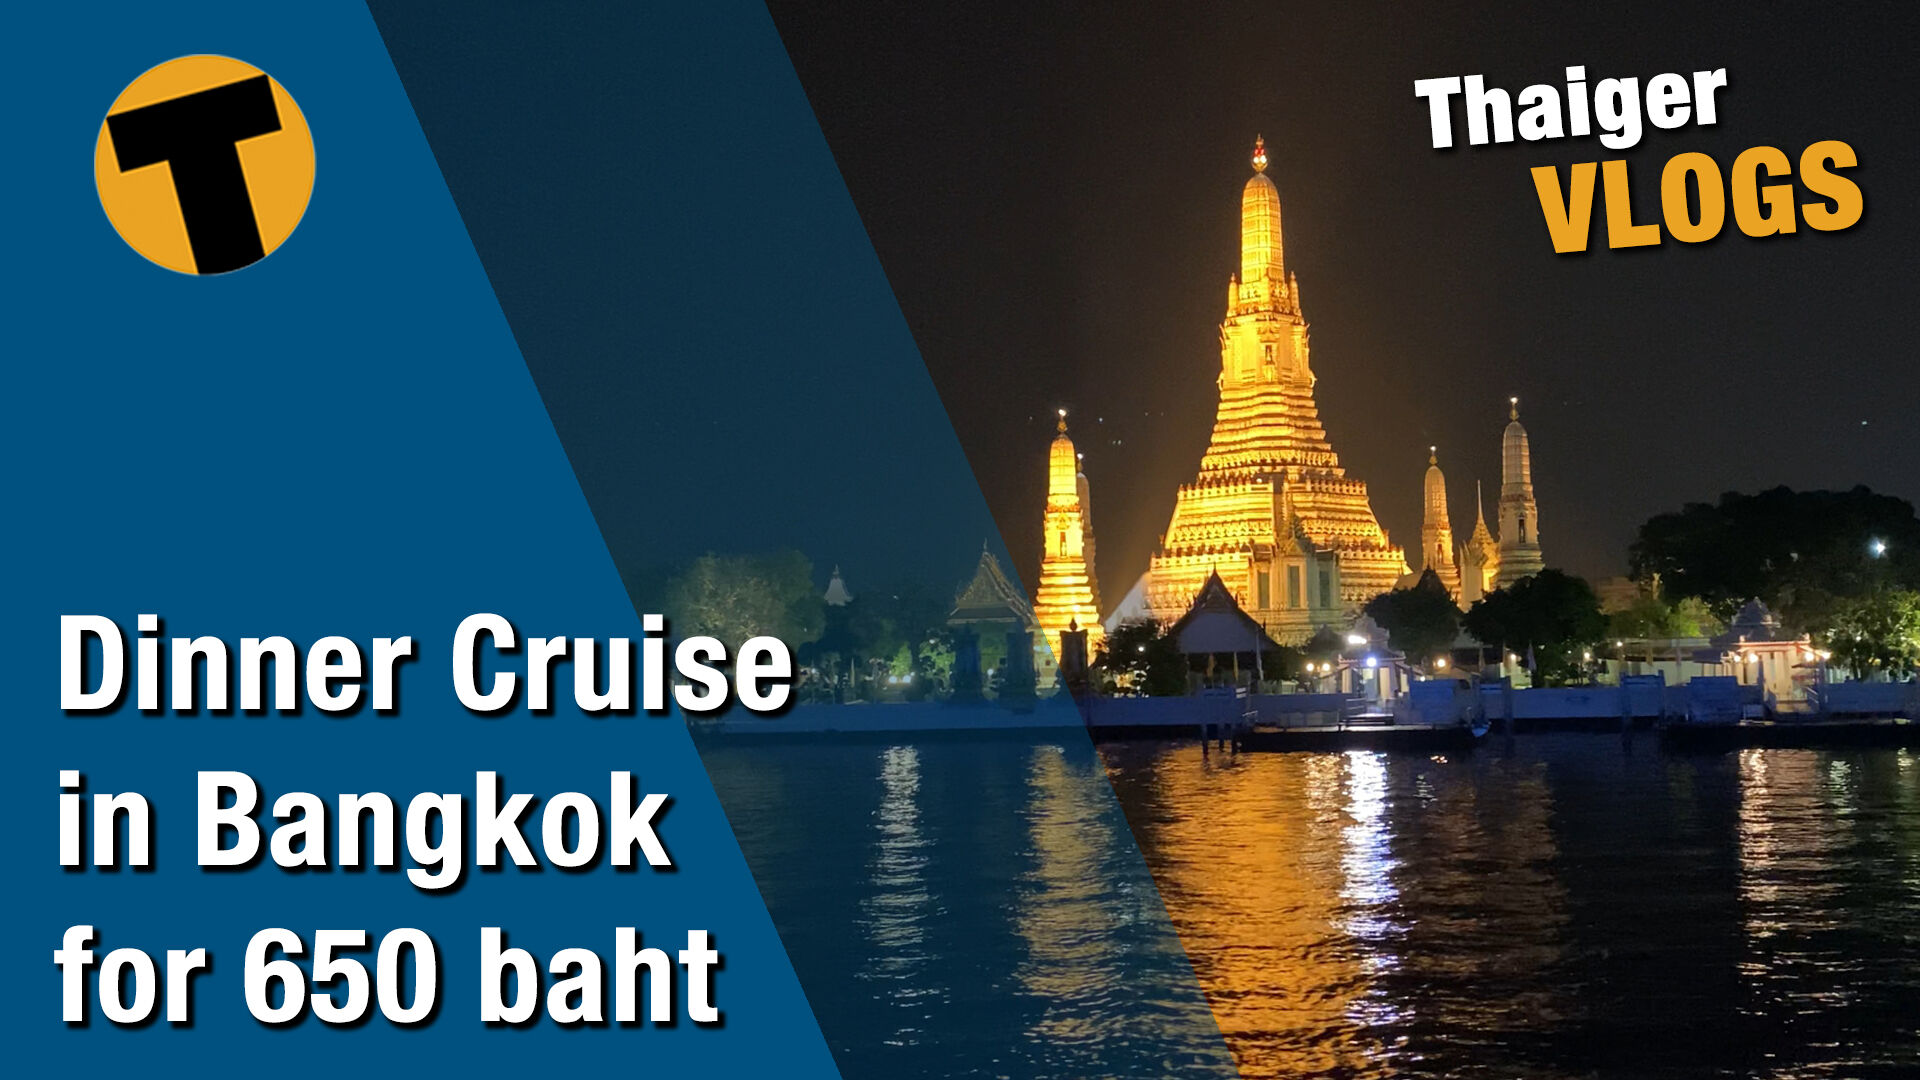 Dinner cruise in Bangkok on the Chao Phraya for only 650 baht   VIDEO   The Thaiger